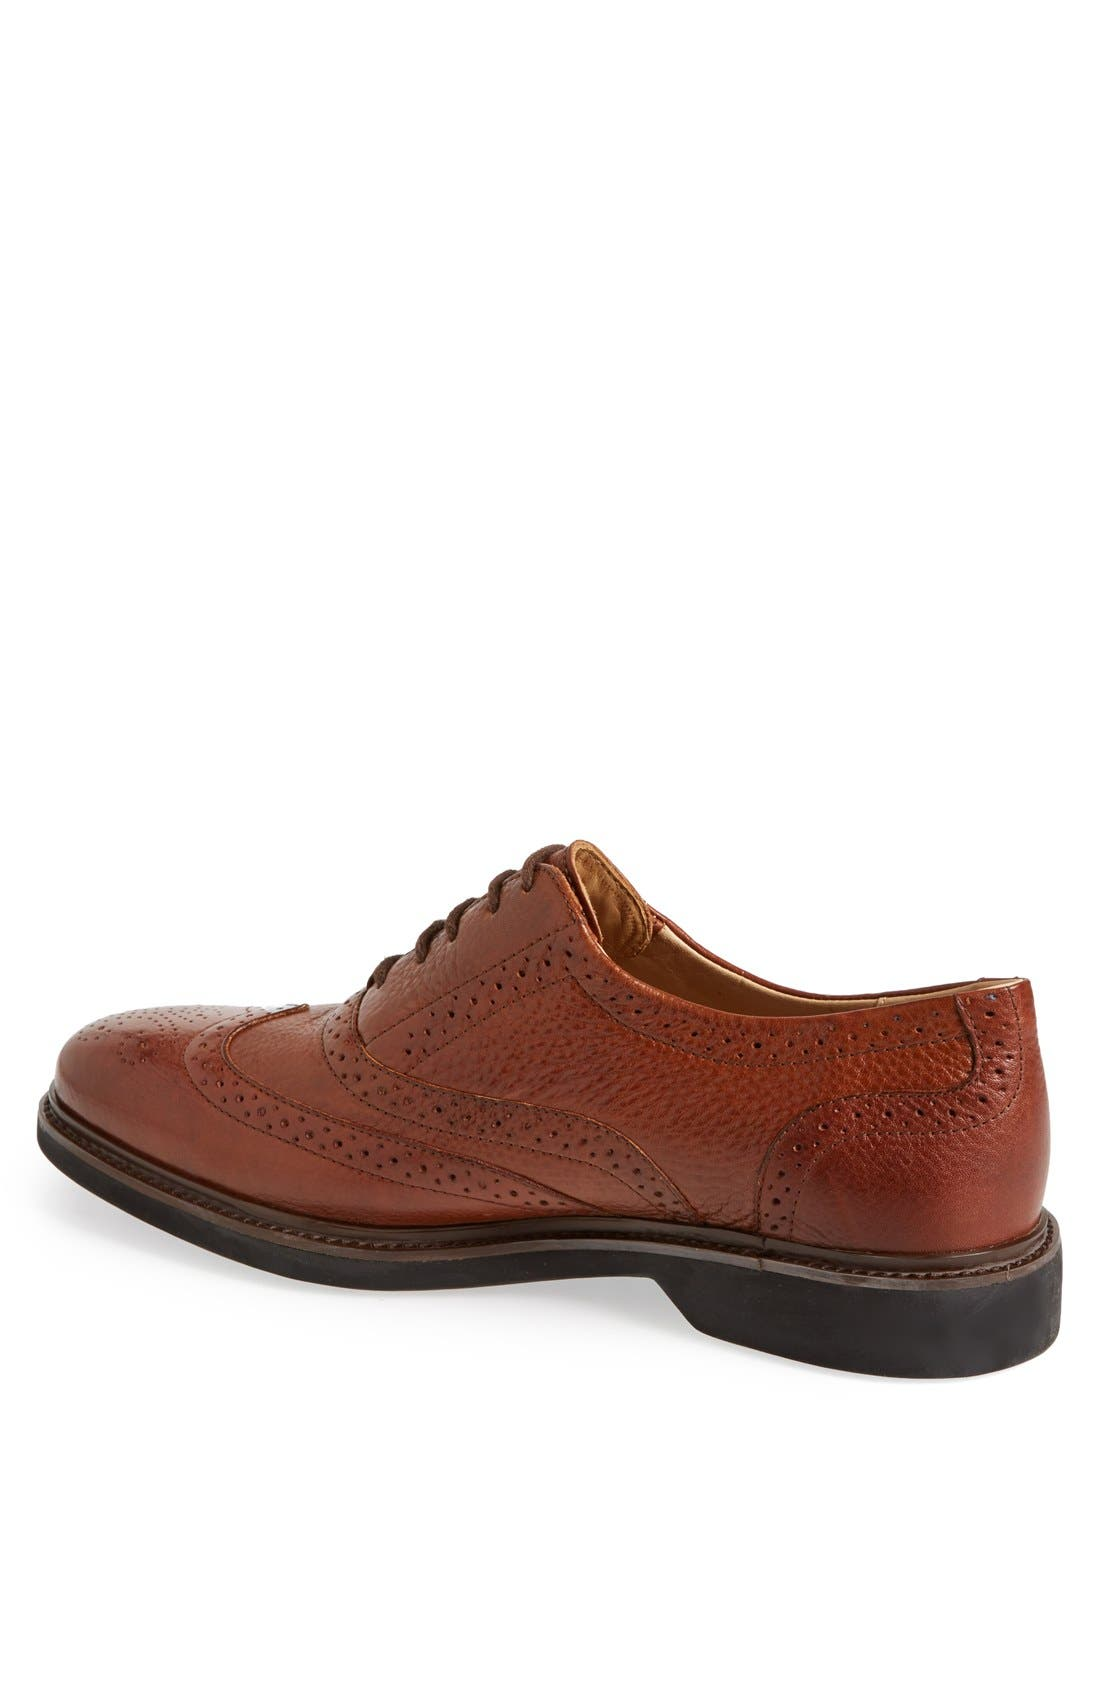 Alternate Image 2  - Anatomic & Co 'Gabriel' Wingtip (Men)